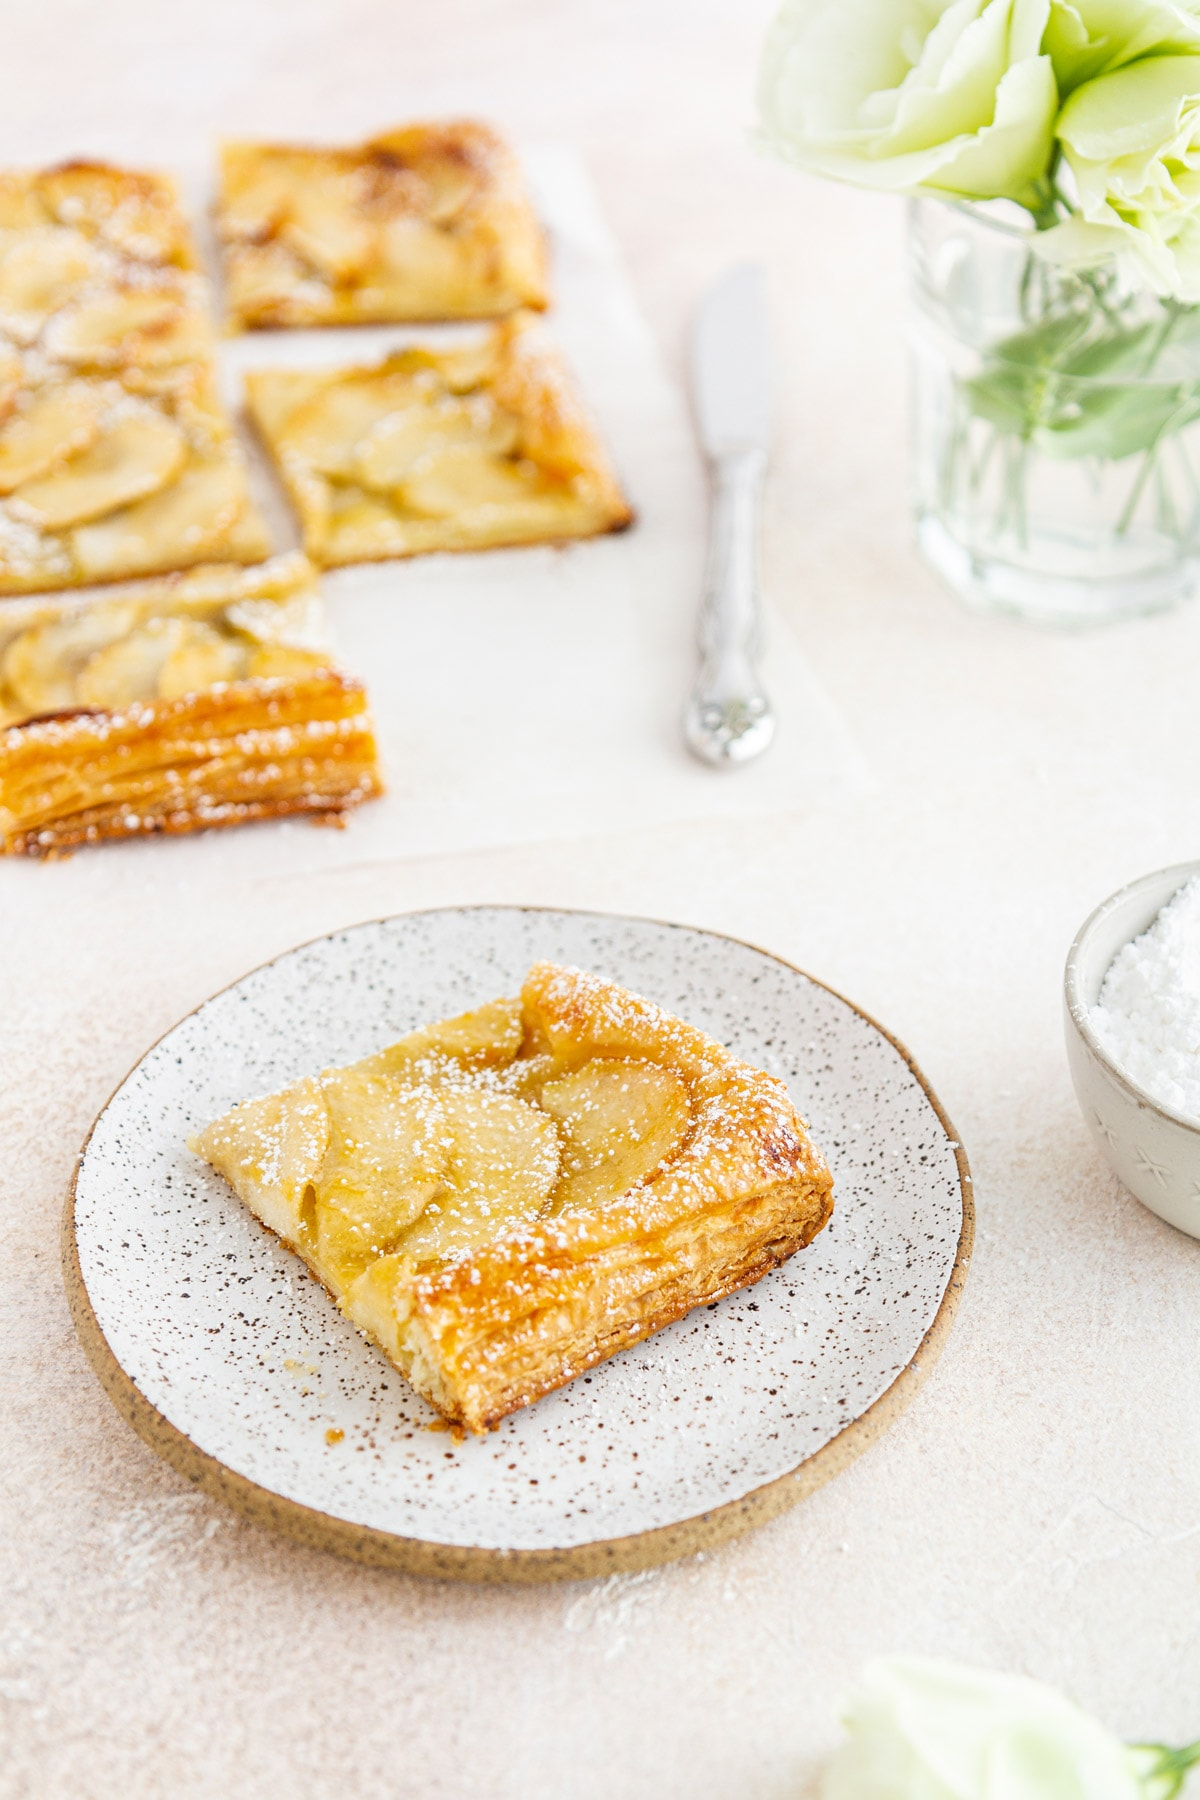 a slice of French apple tart on a plate